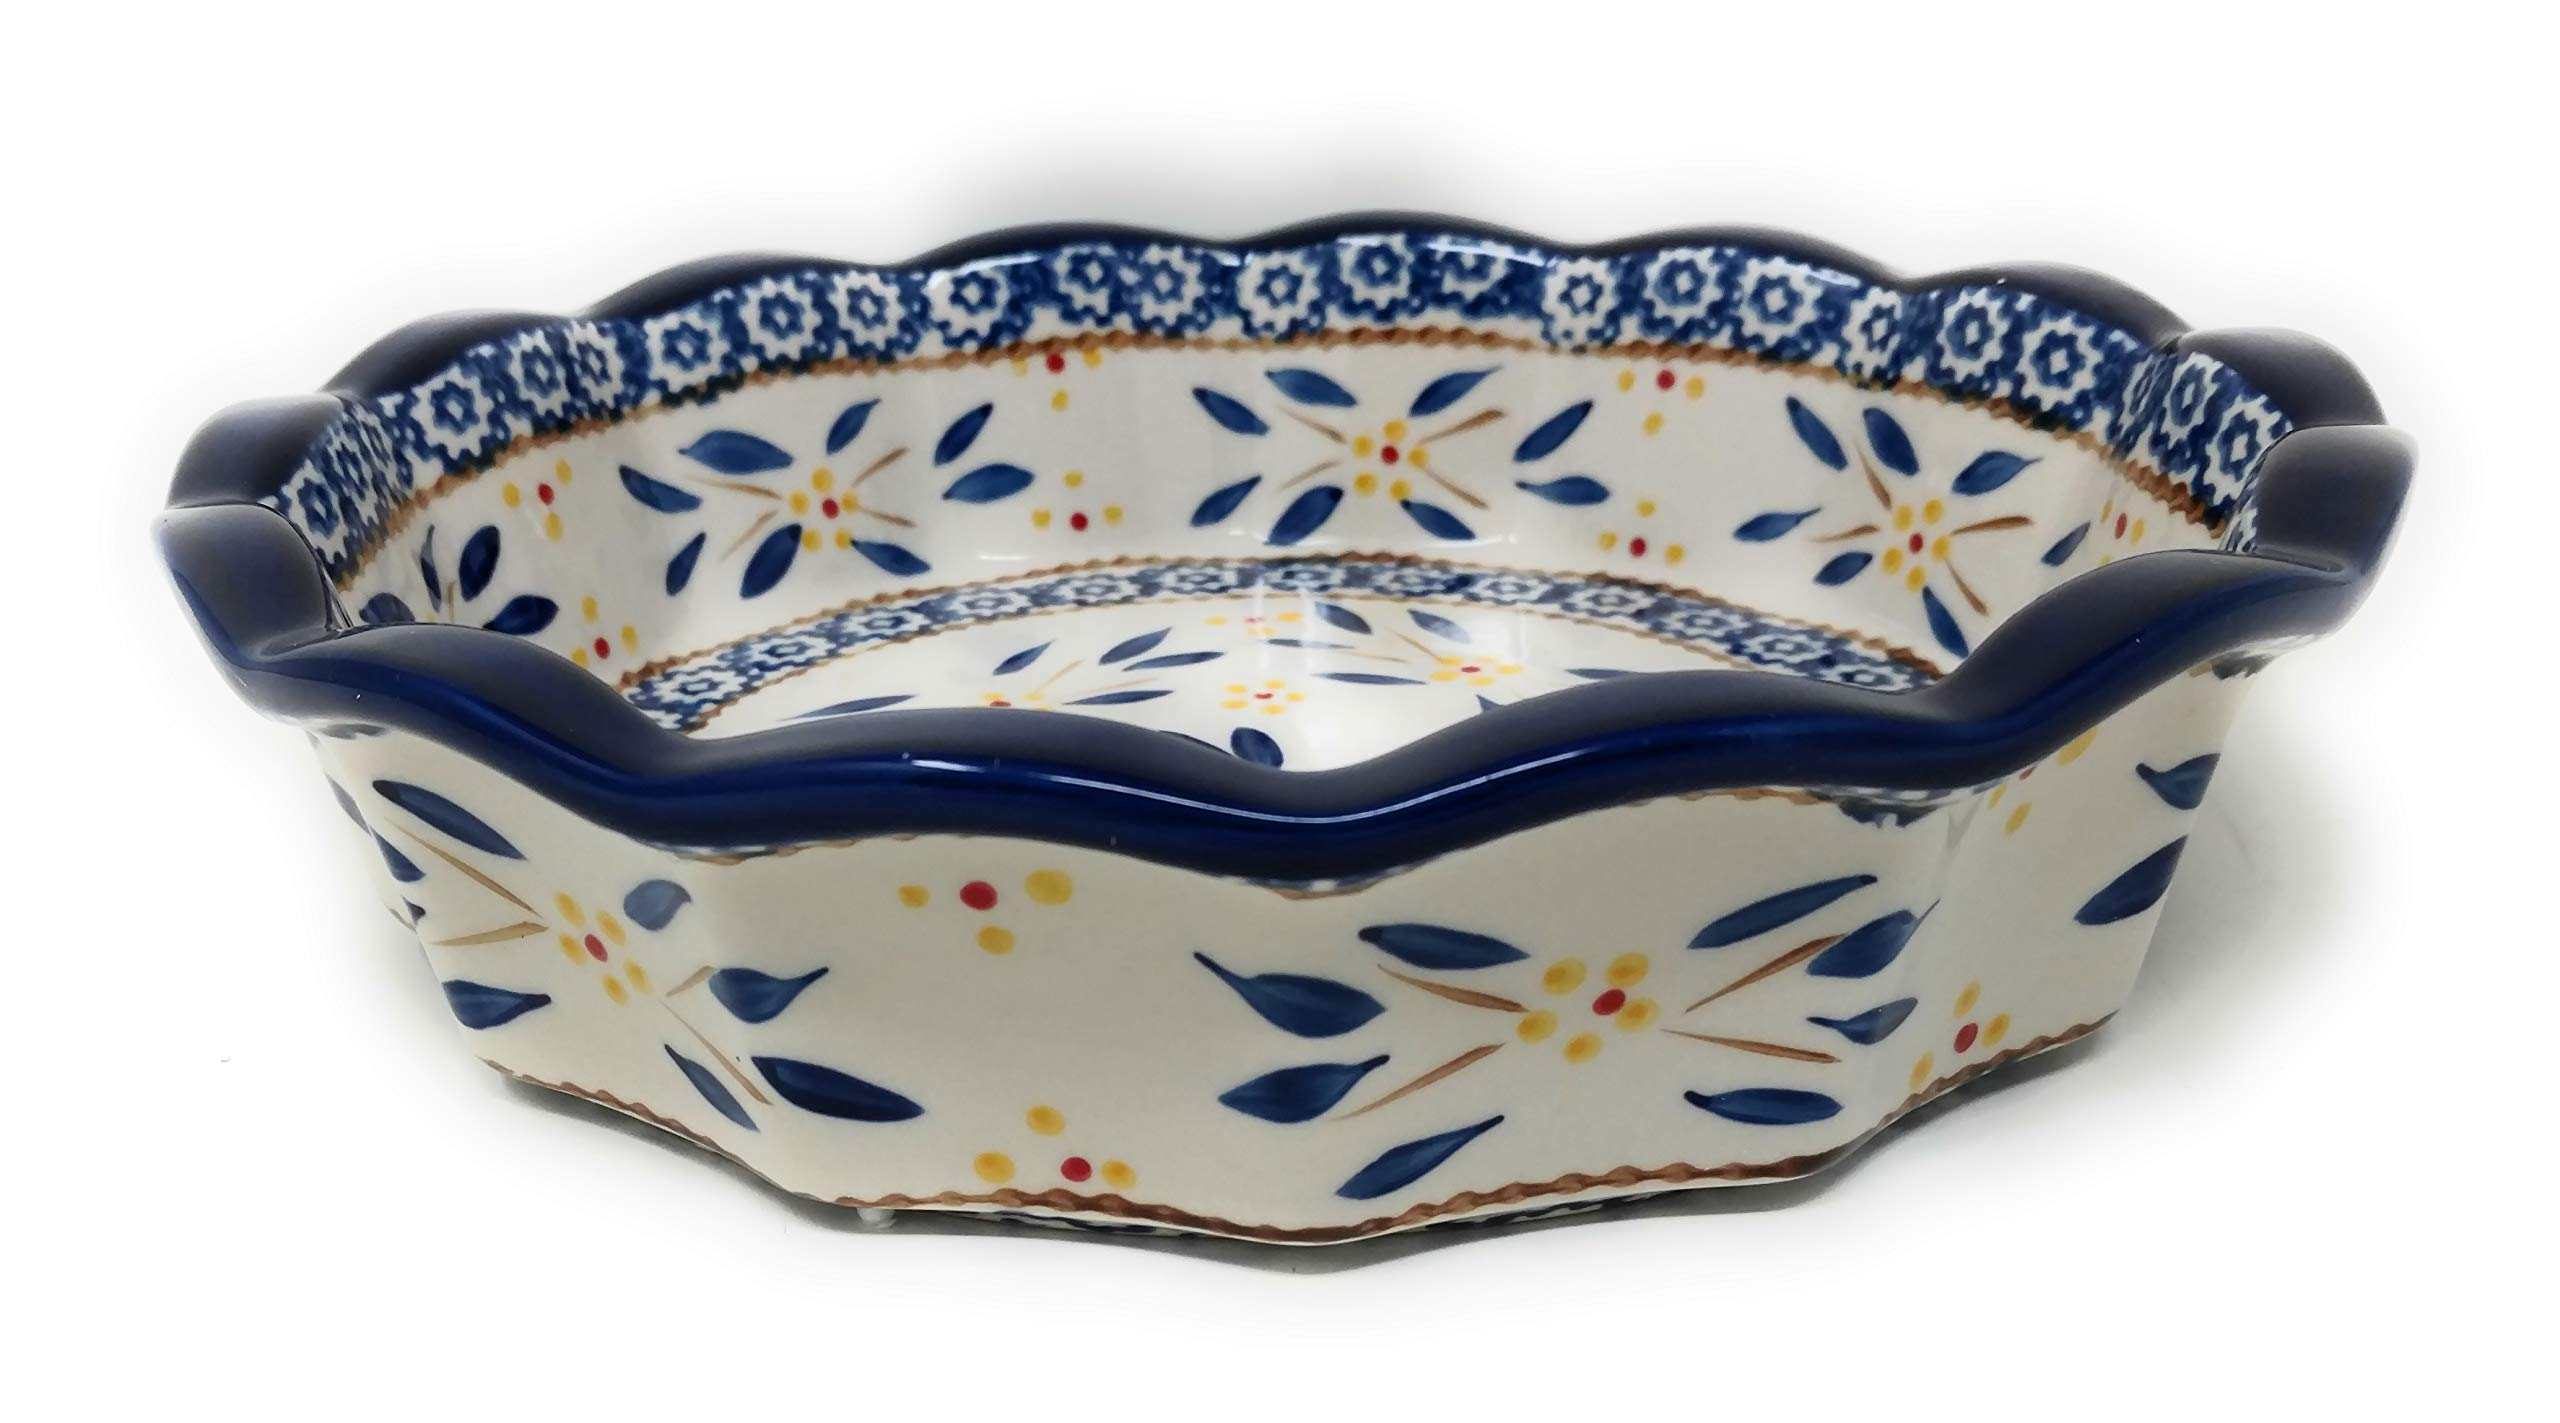 Temp-tations 10'' x 2.25'' Pie Pan w/Cover, Scalloped, Deep Dish Pizza or Quiche (Old World Blue)